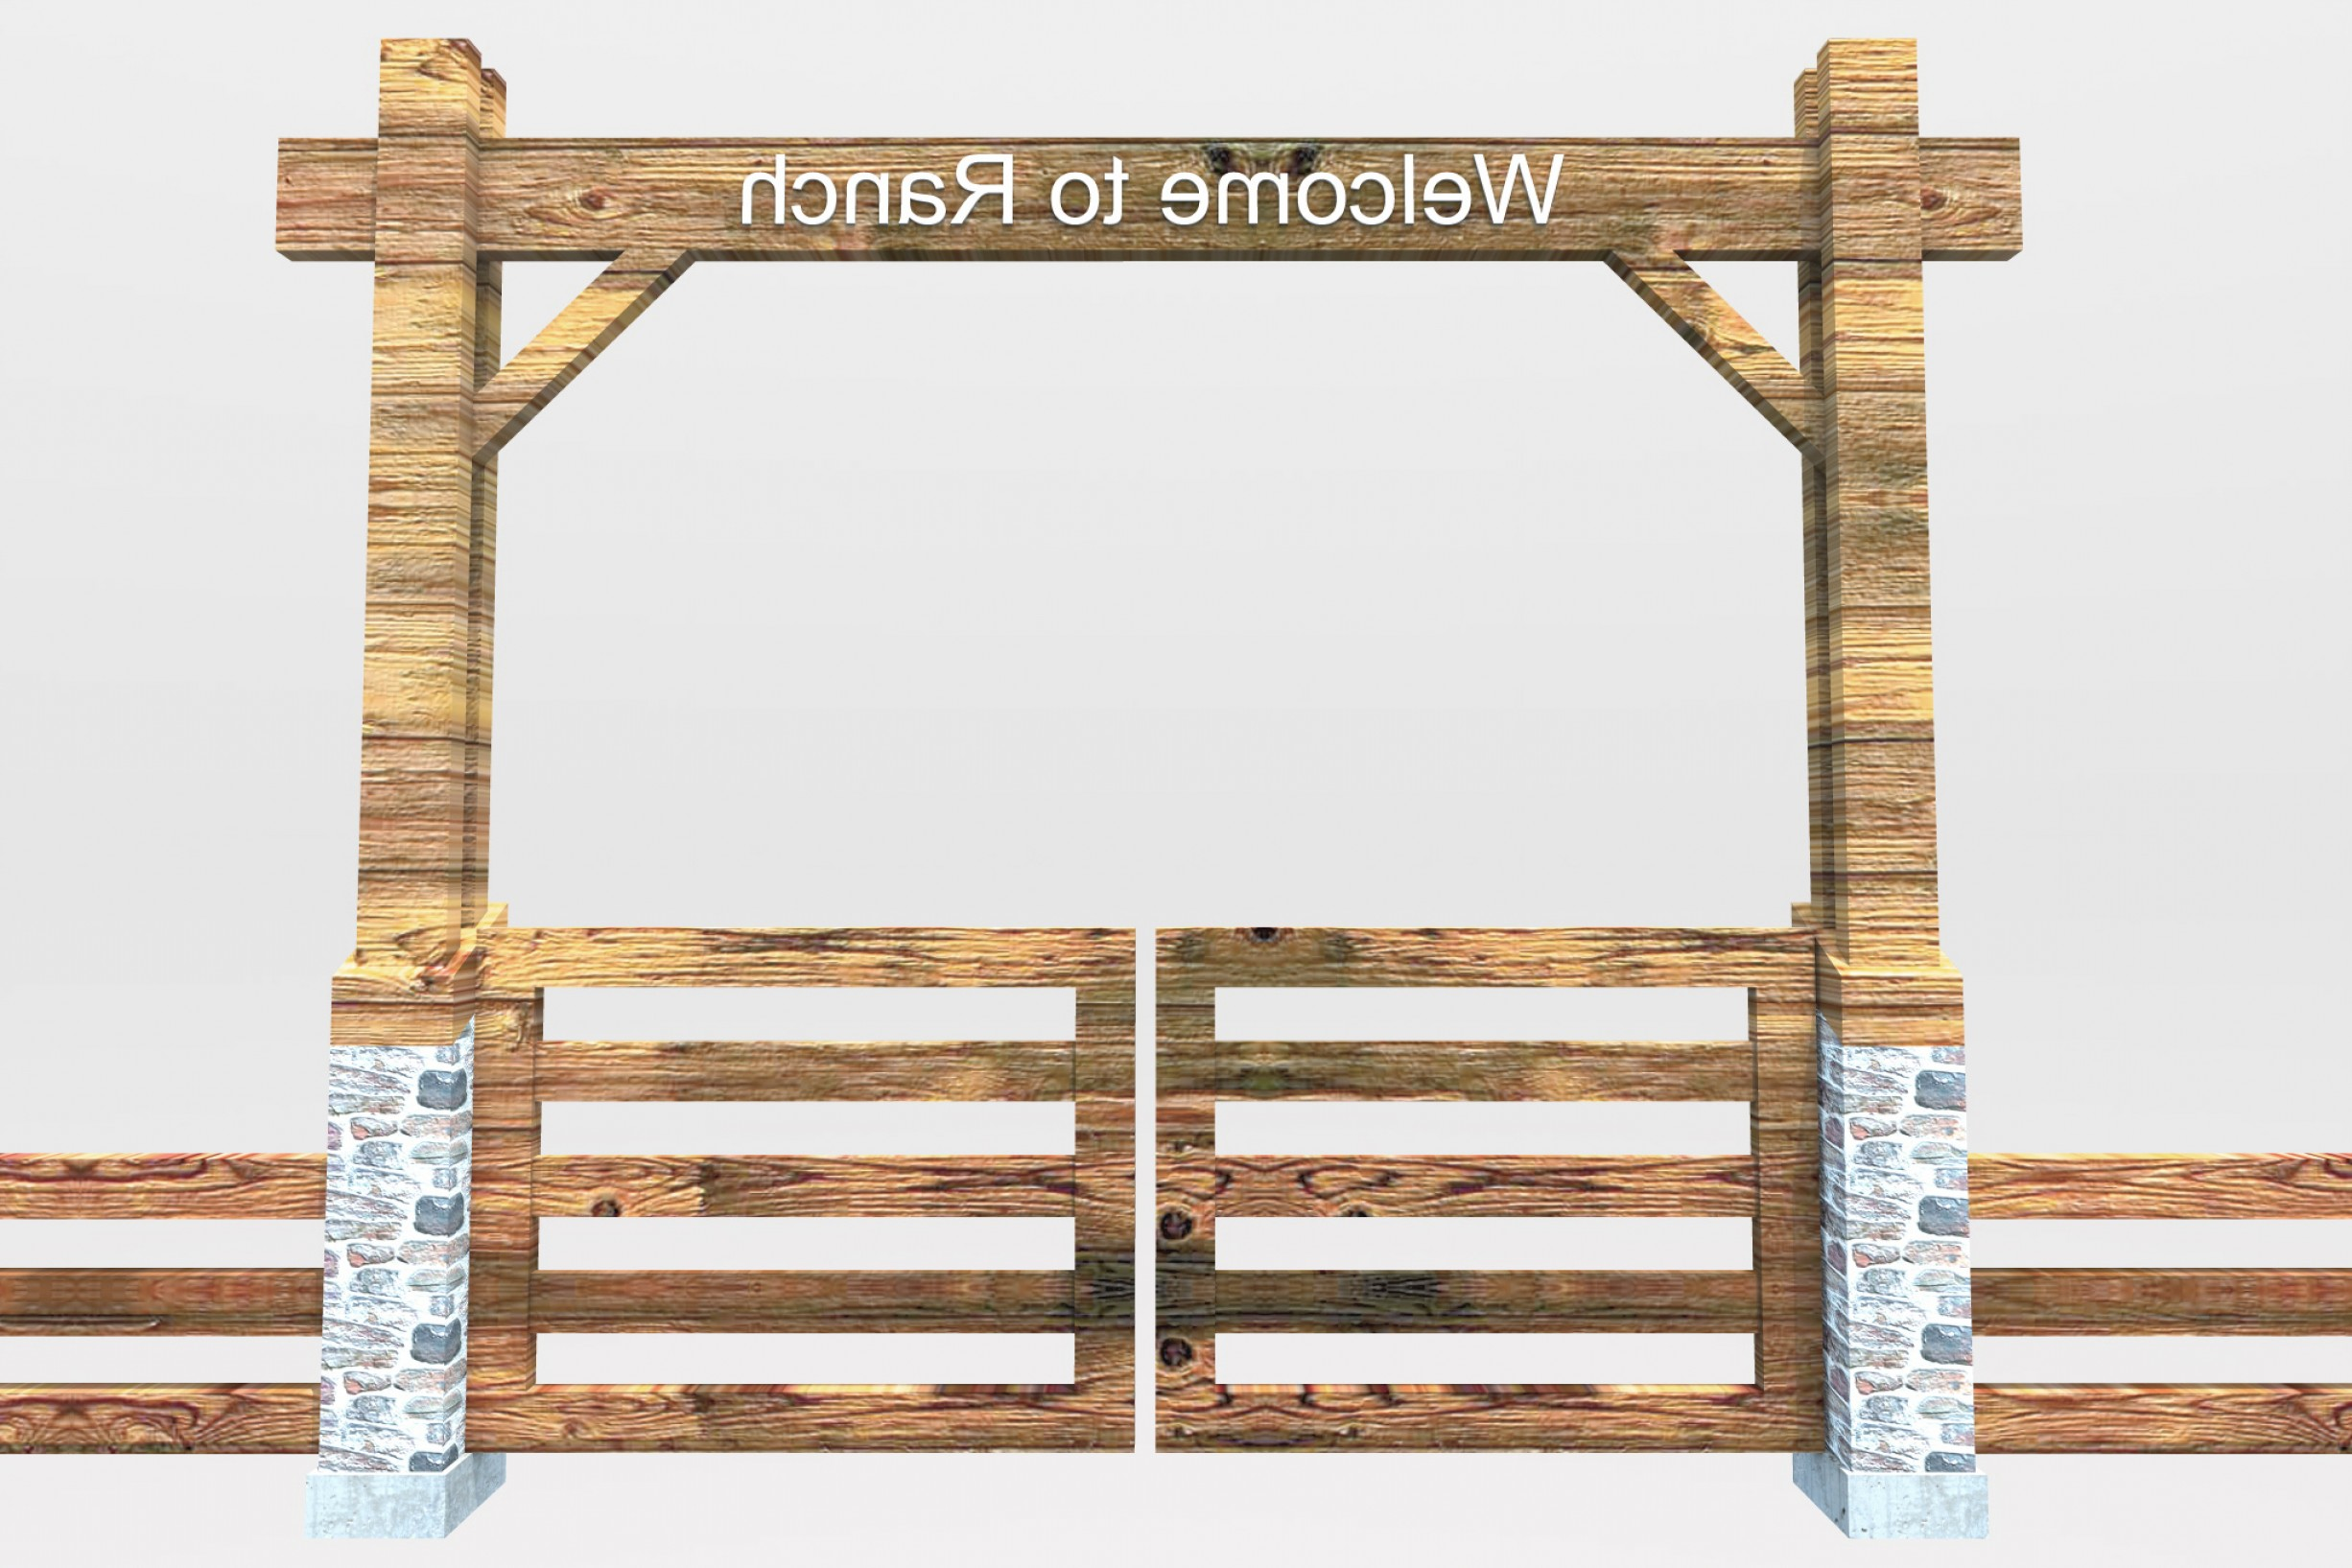 Free ranch cliparts download. Gate clipart gate design